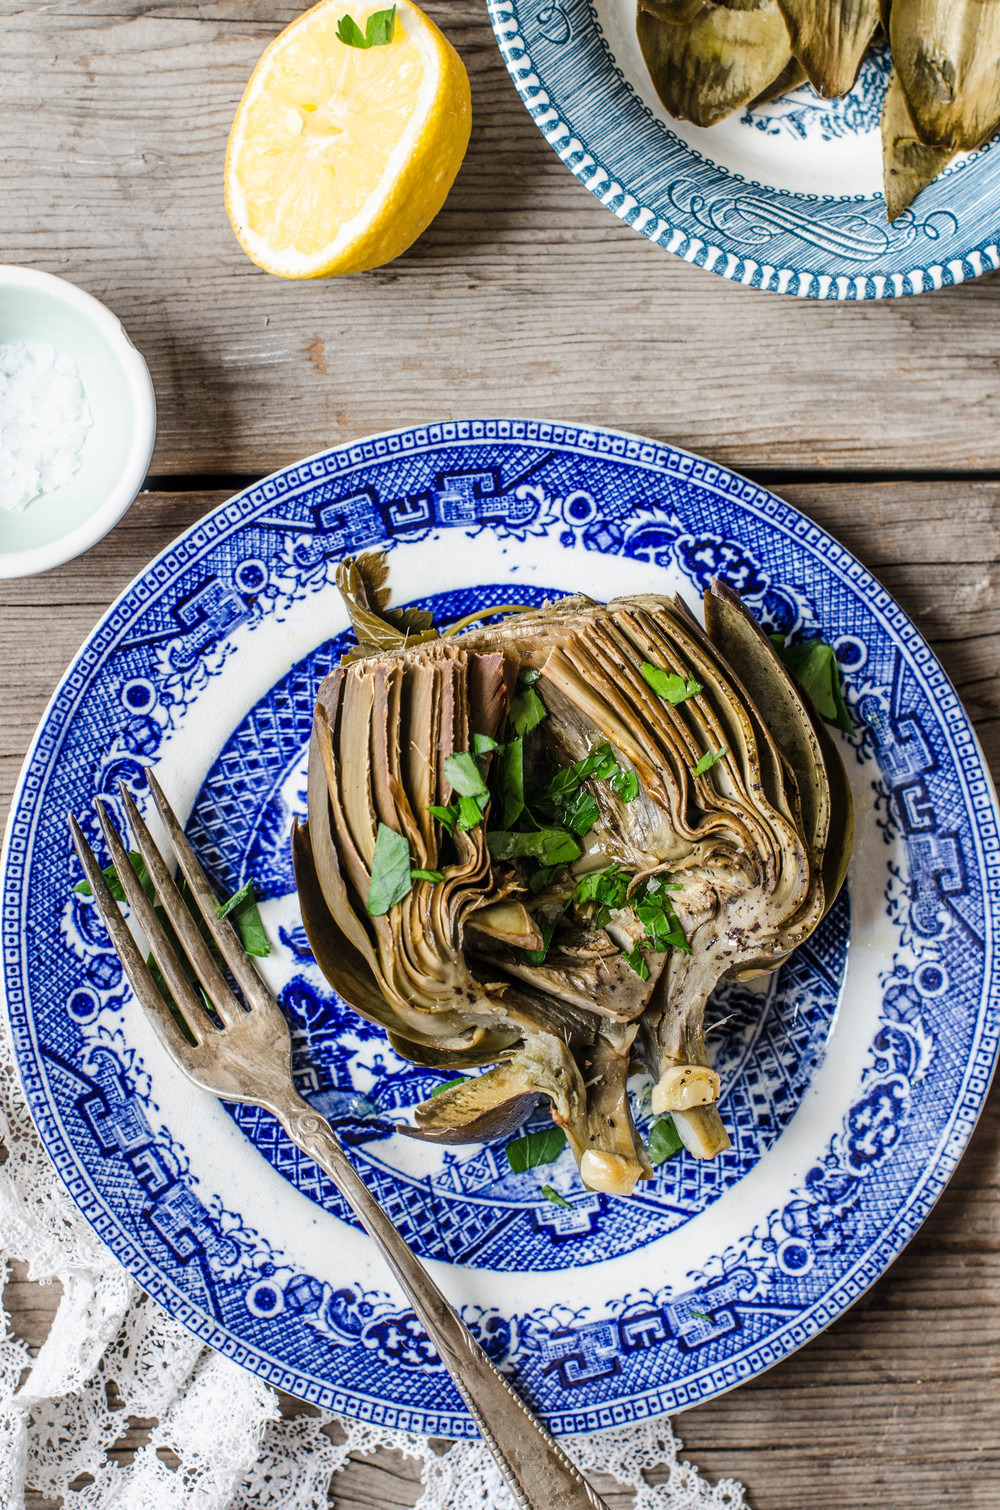 ROSE & IVY Journal Braised Artichokes with Lemon, Garlic & Parsley